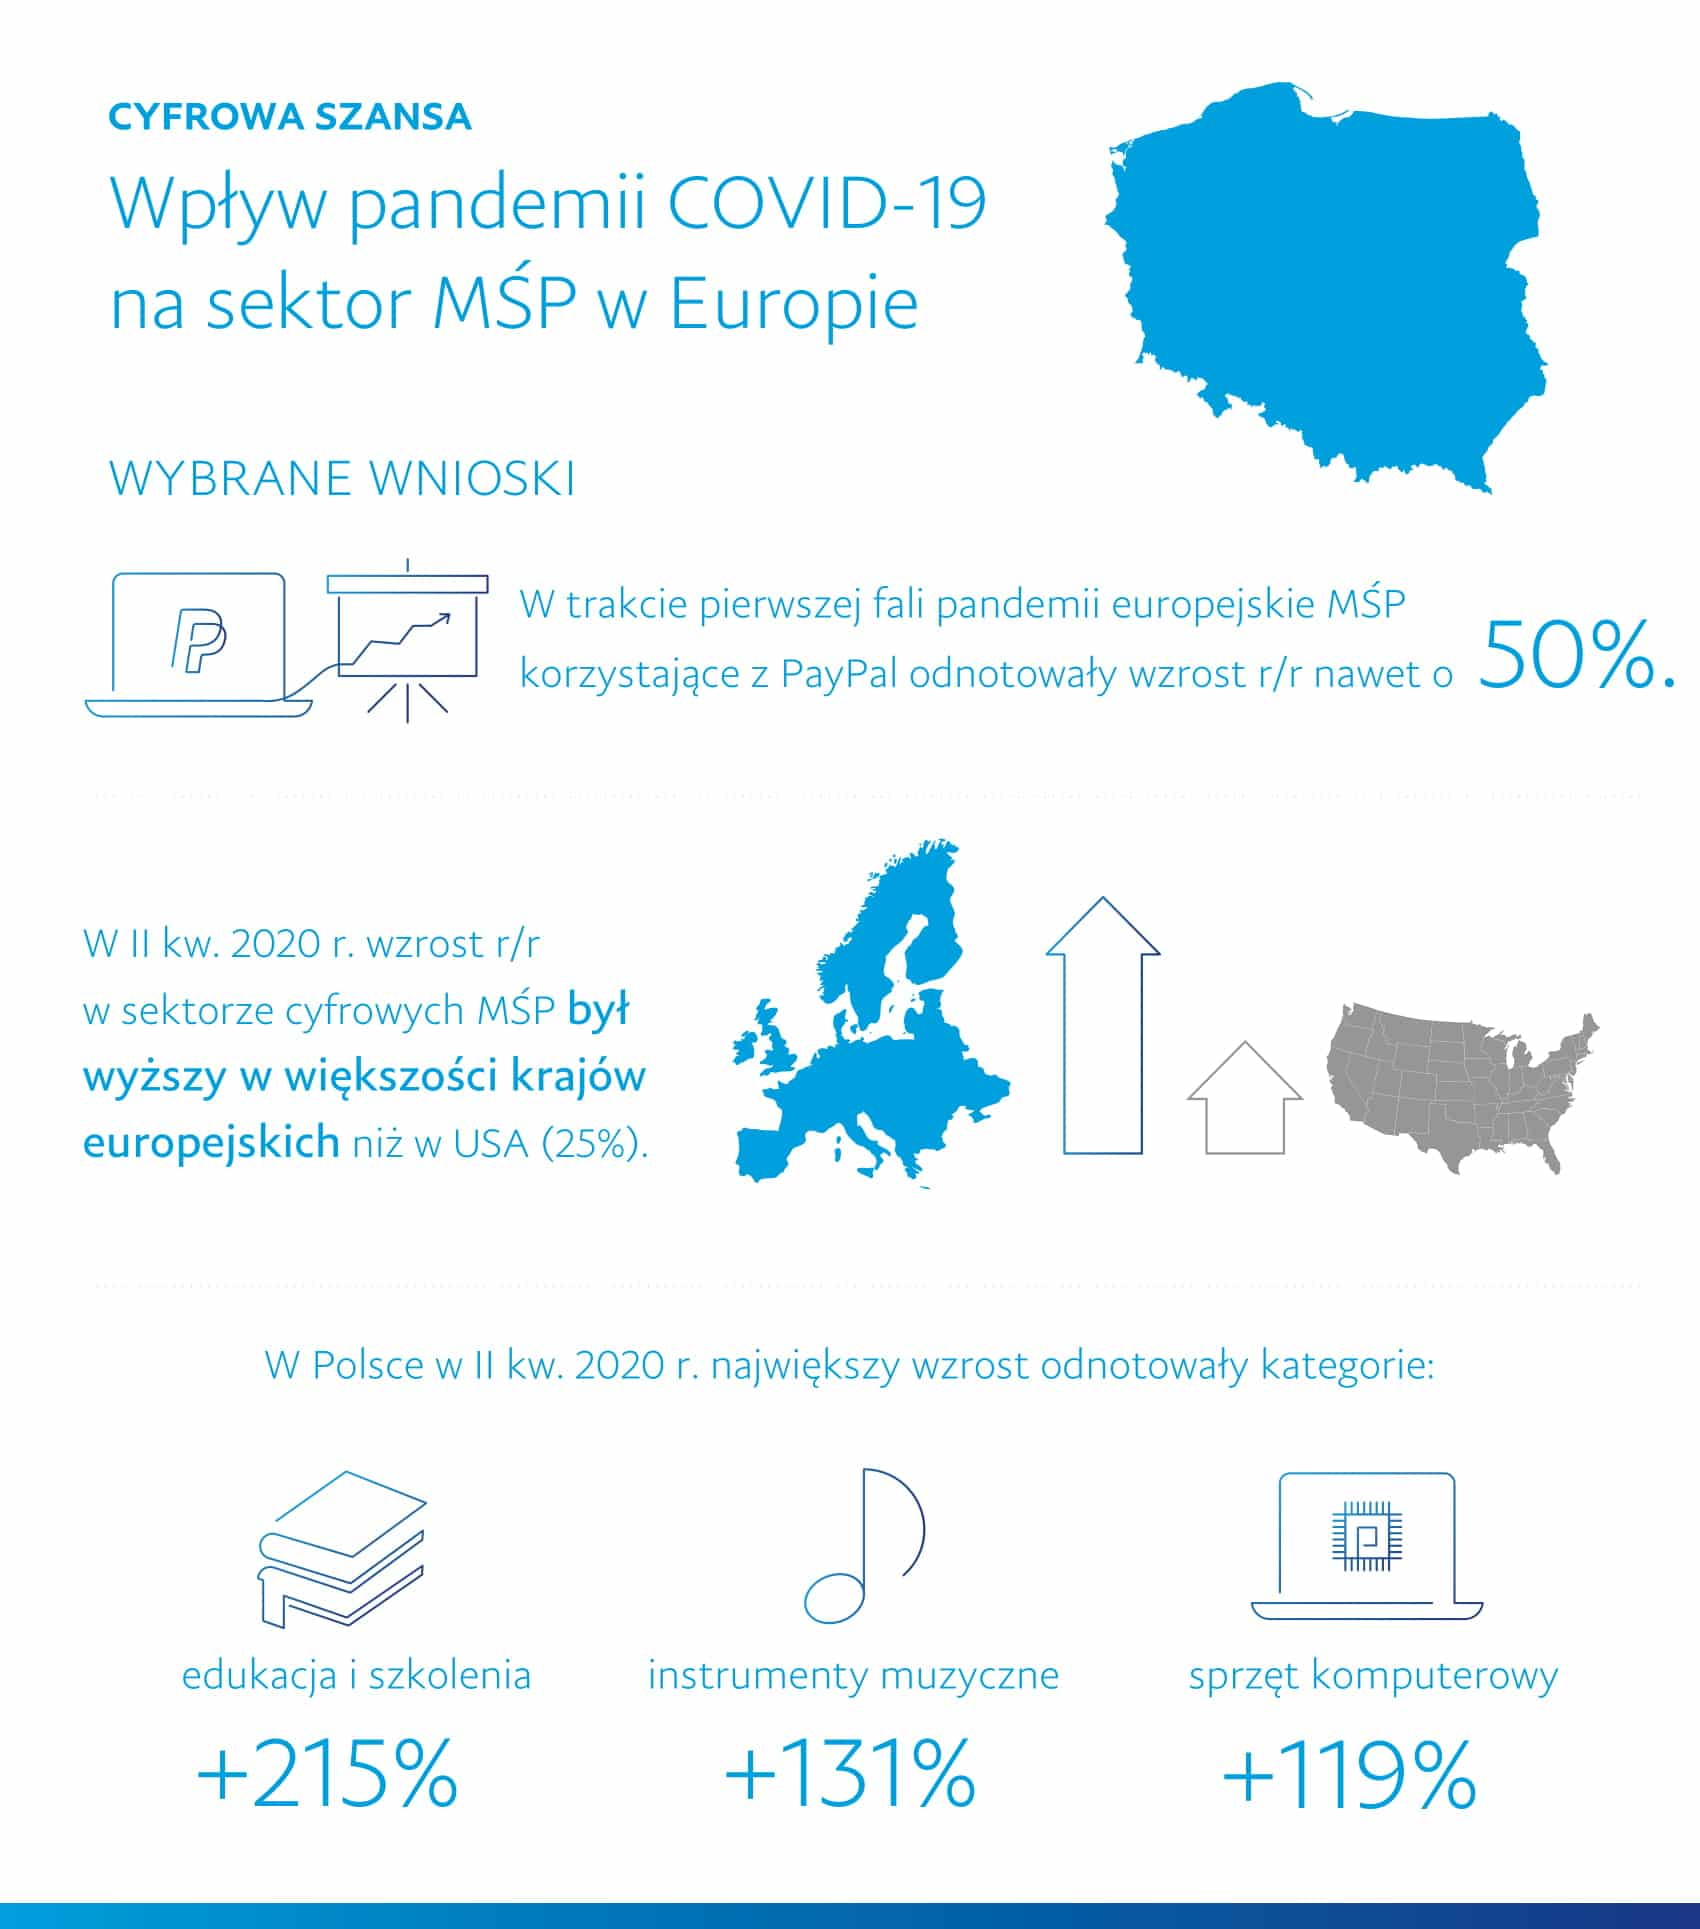 PL_Covid19-Impact-Euro-SMEs-Infographic